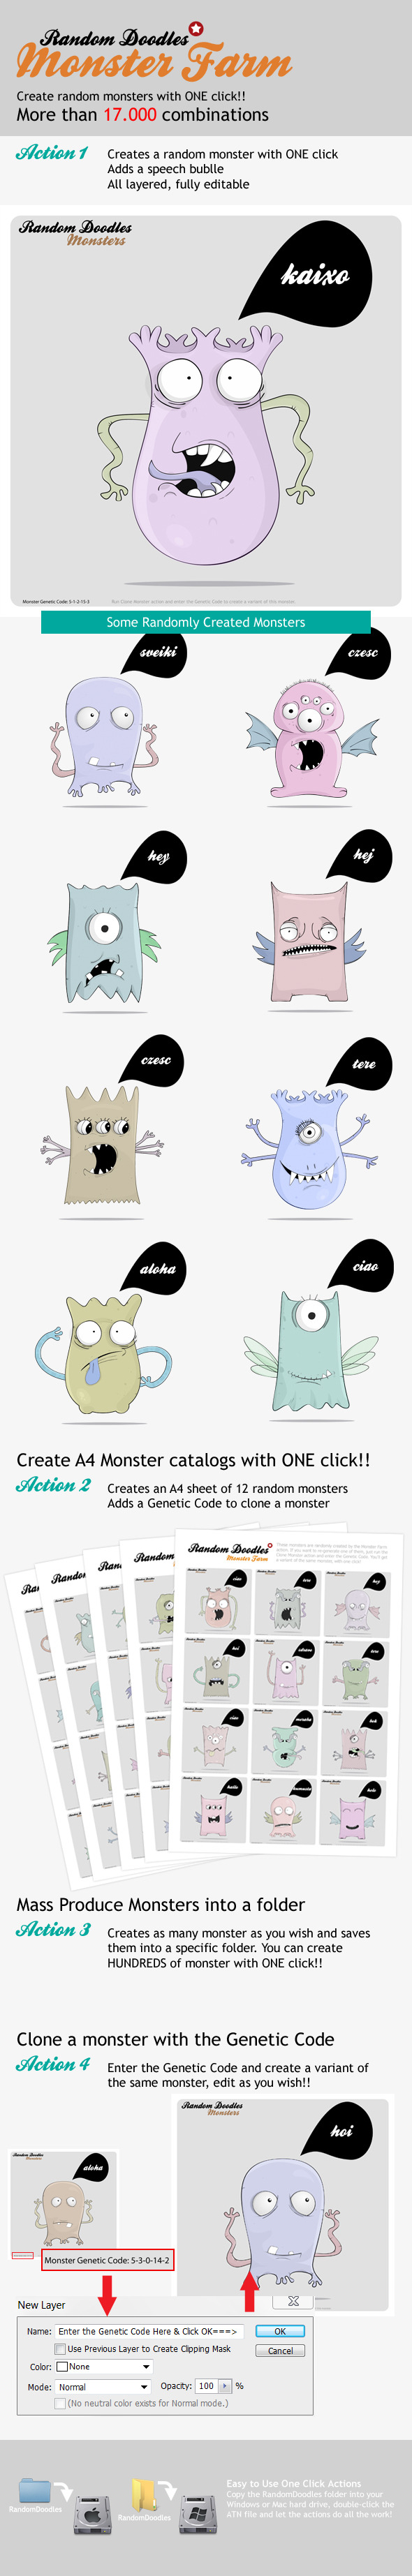 MonsterFarm - Random Doodle Generator - Utilities Actions